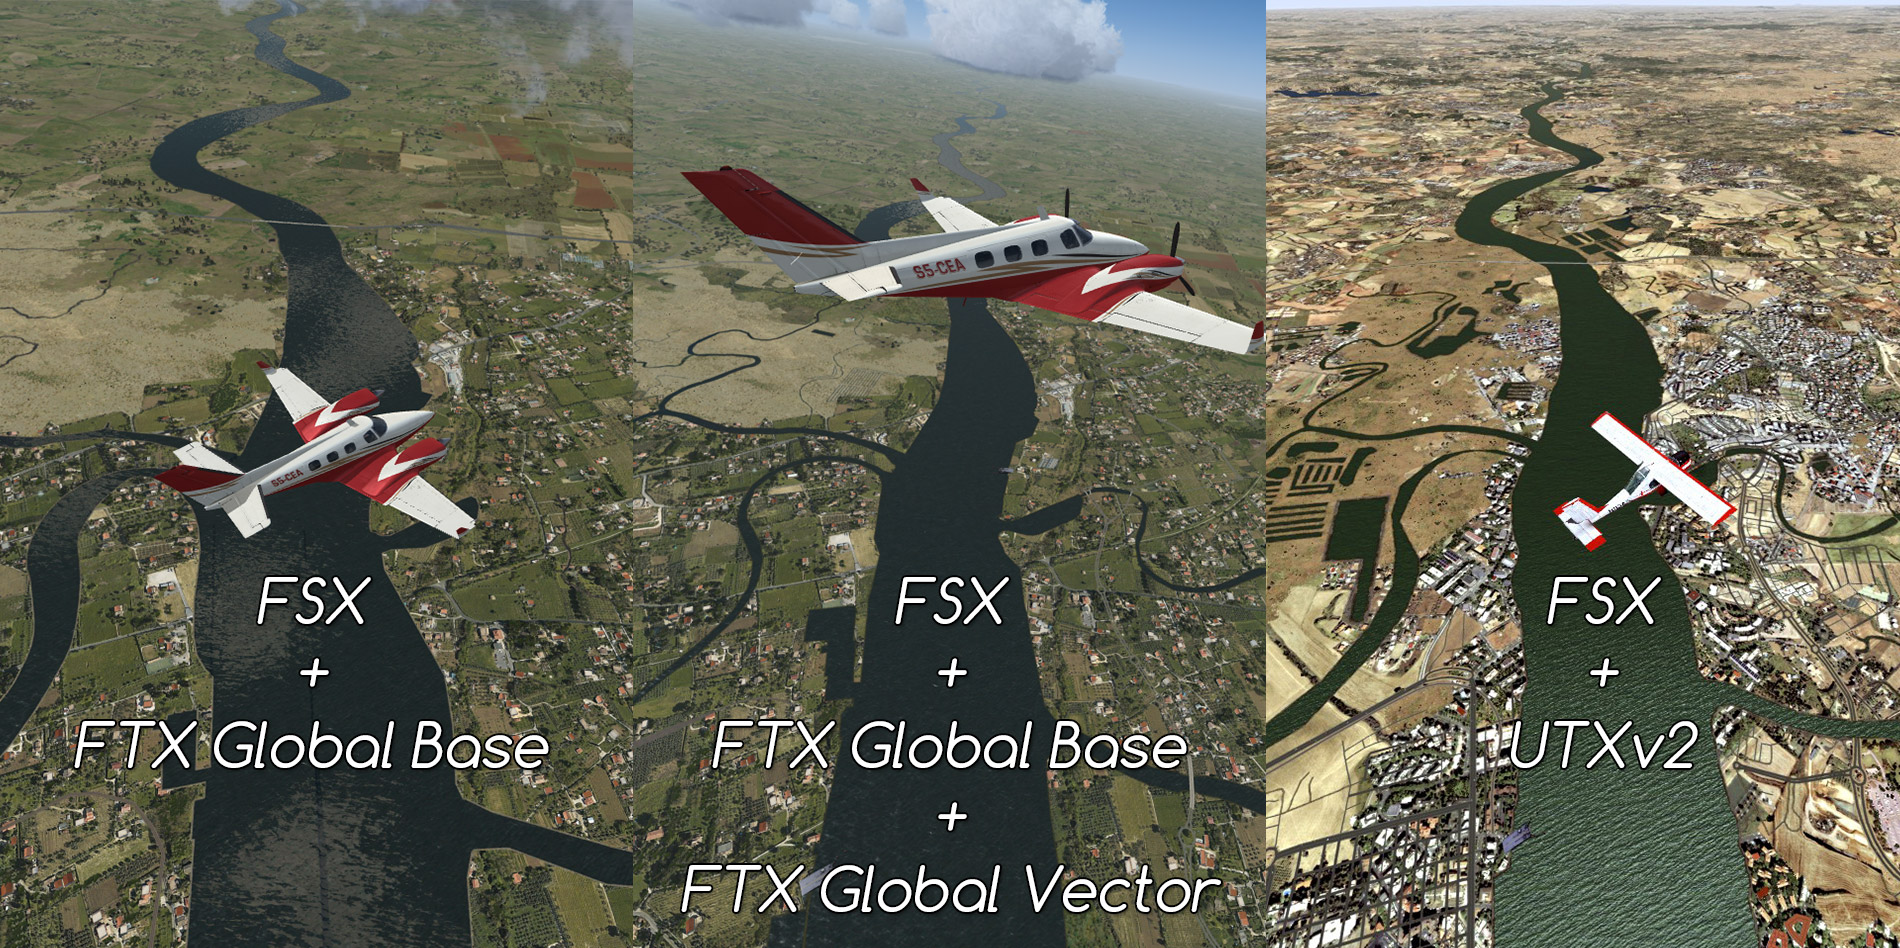 FTX Global Vector - ORBX - review (5*) • C-Aviation